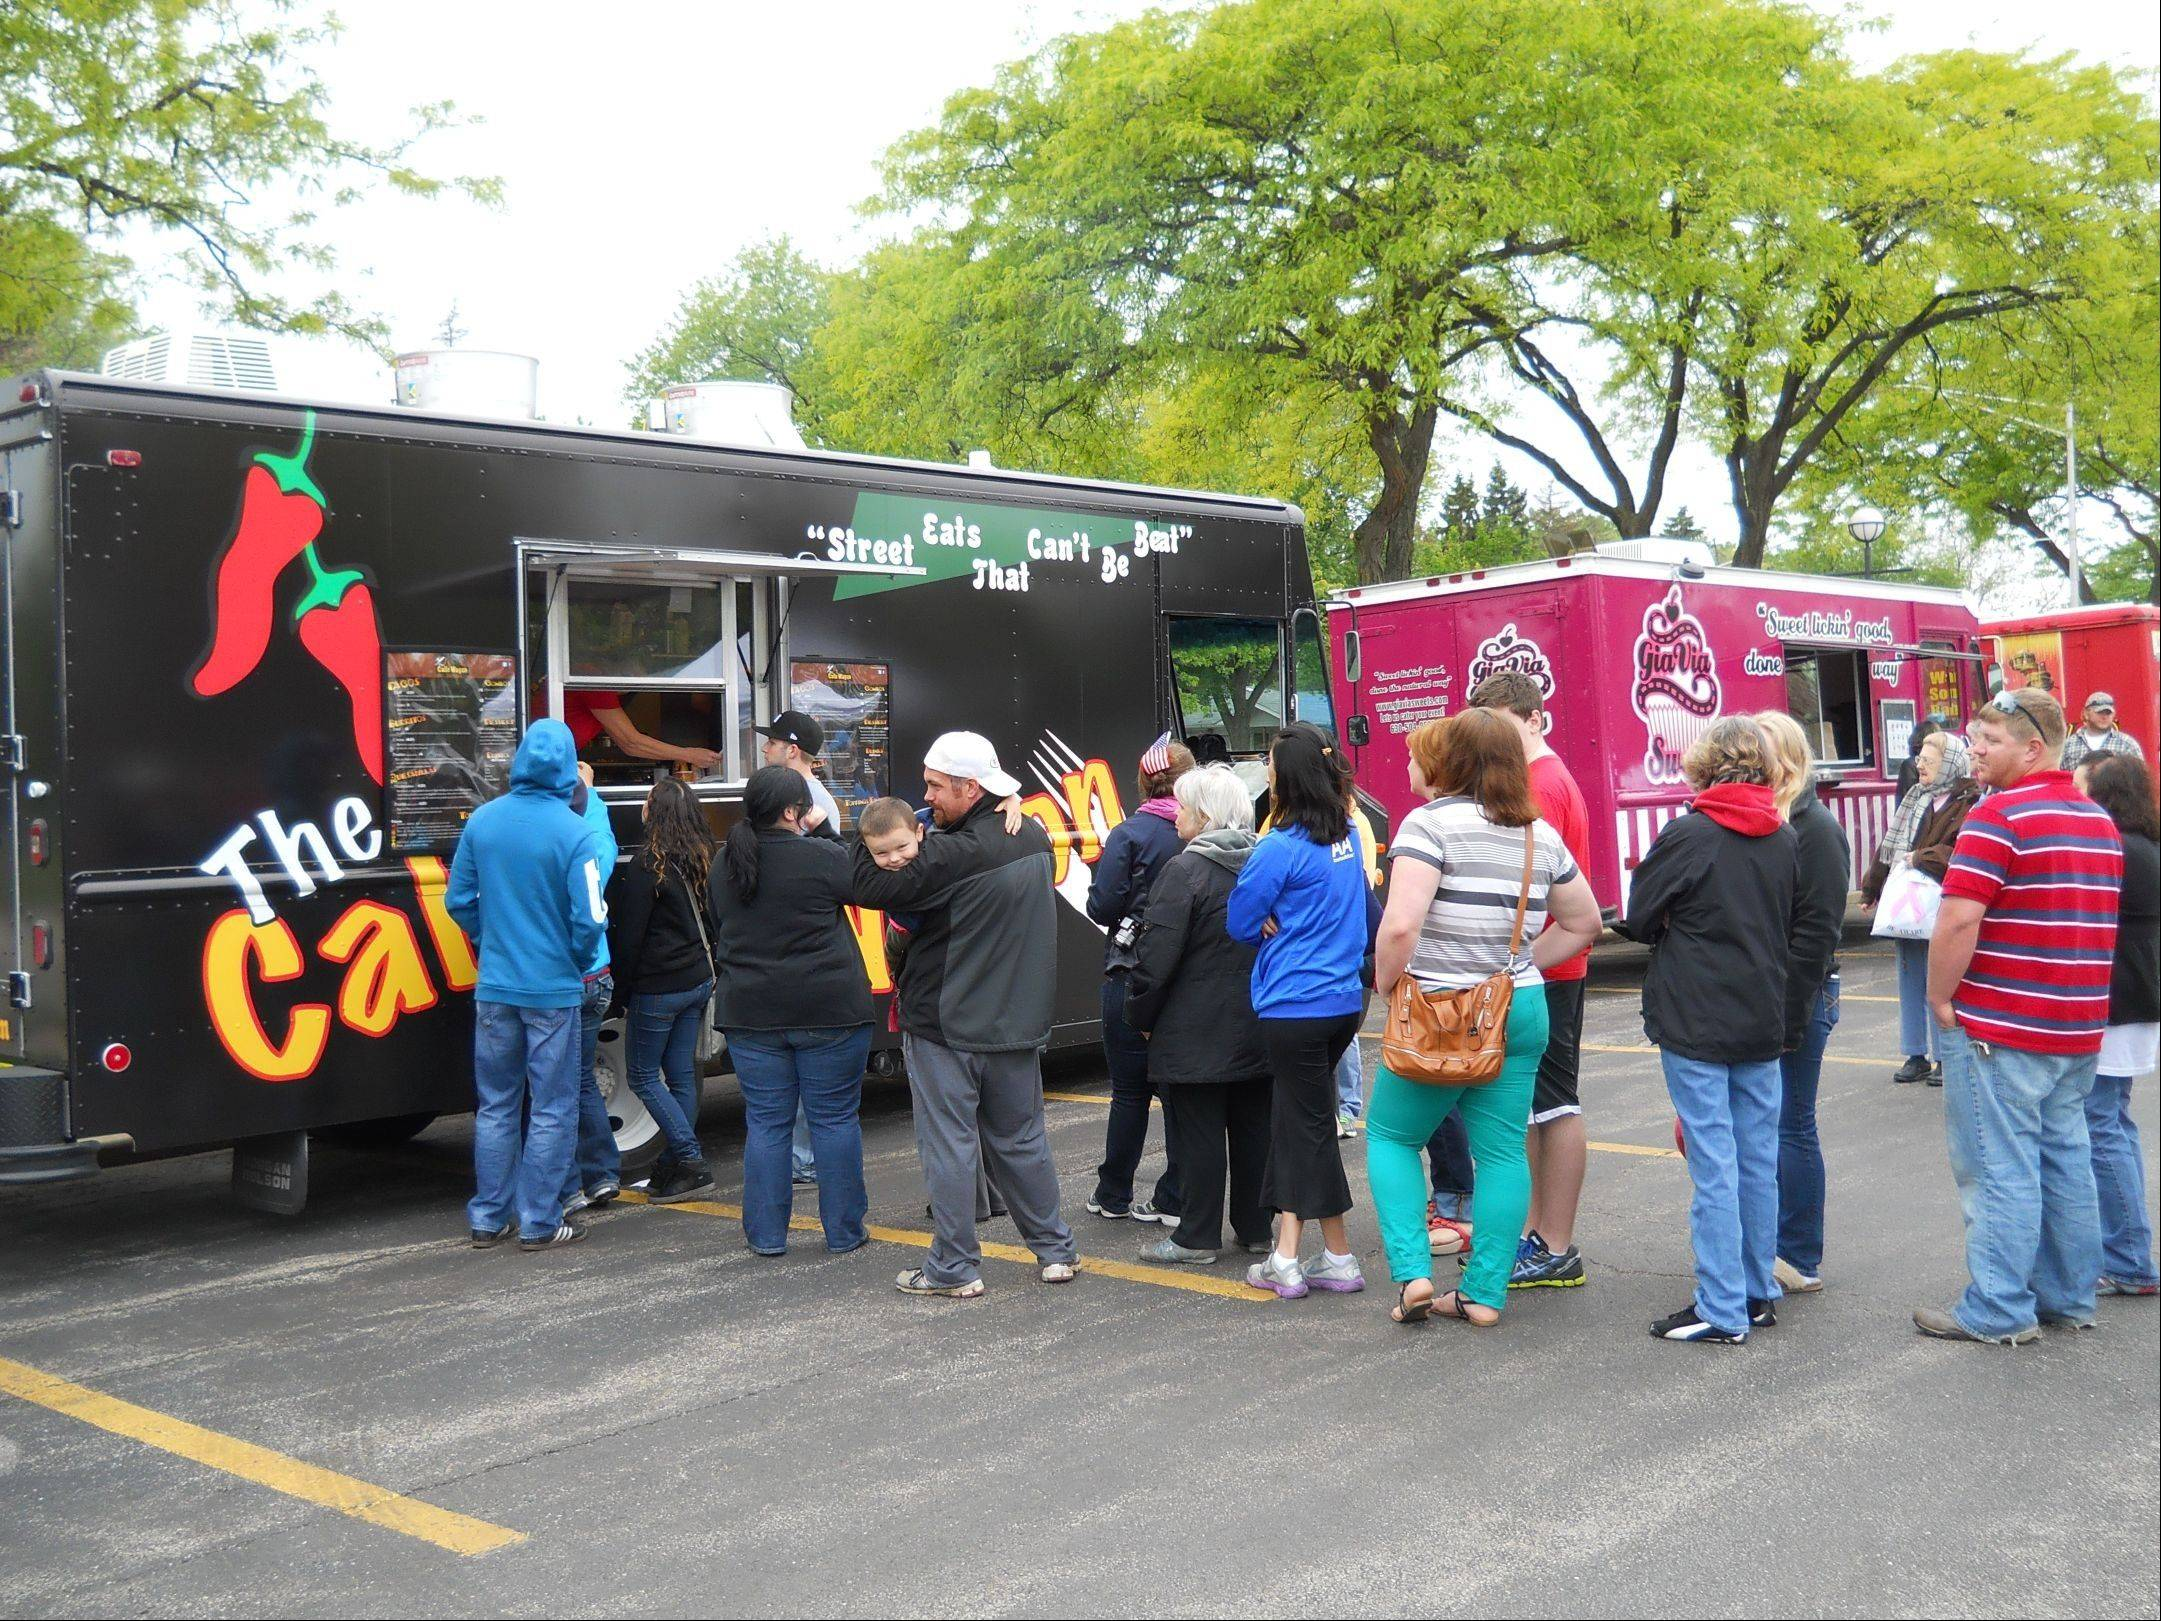 "Rolling Meadows ""Farmers & Food Trucks"" will return for a second season next year, with even more vendors expected to take part, city officials recently announced. The market -- held the fourth Saturday of each month from May through September, features a mix of produce and craft vendors with food trucks."